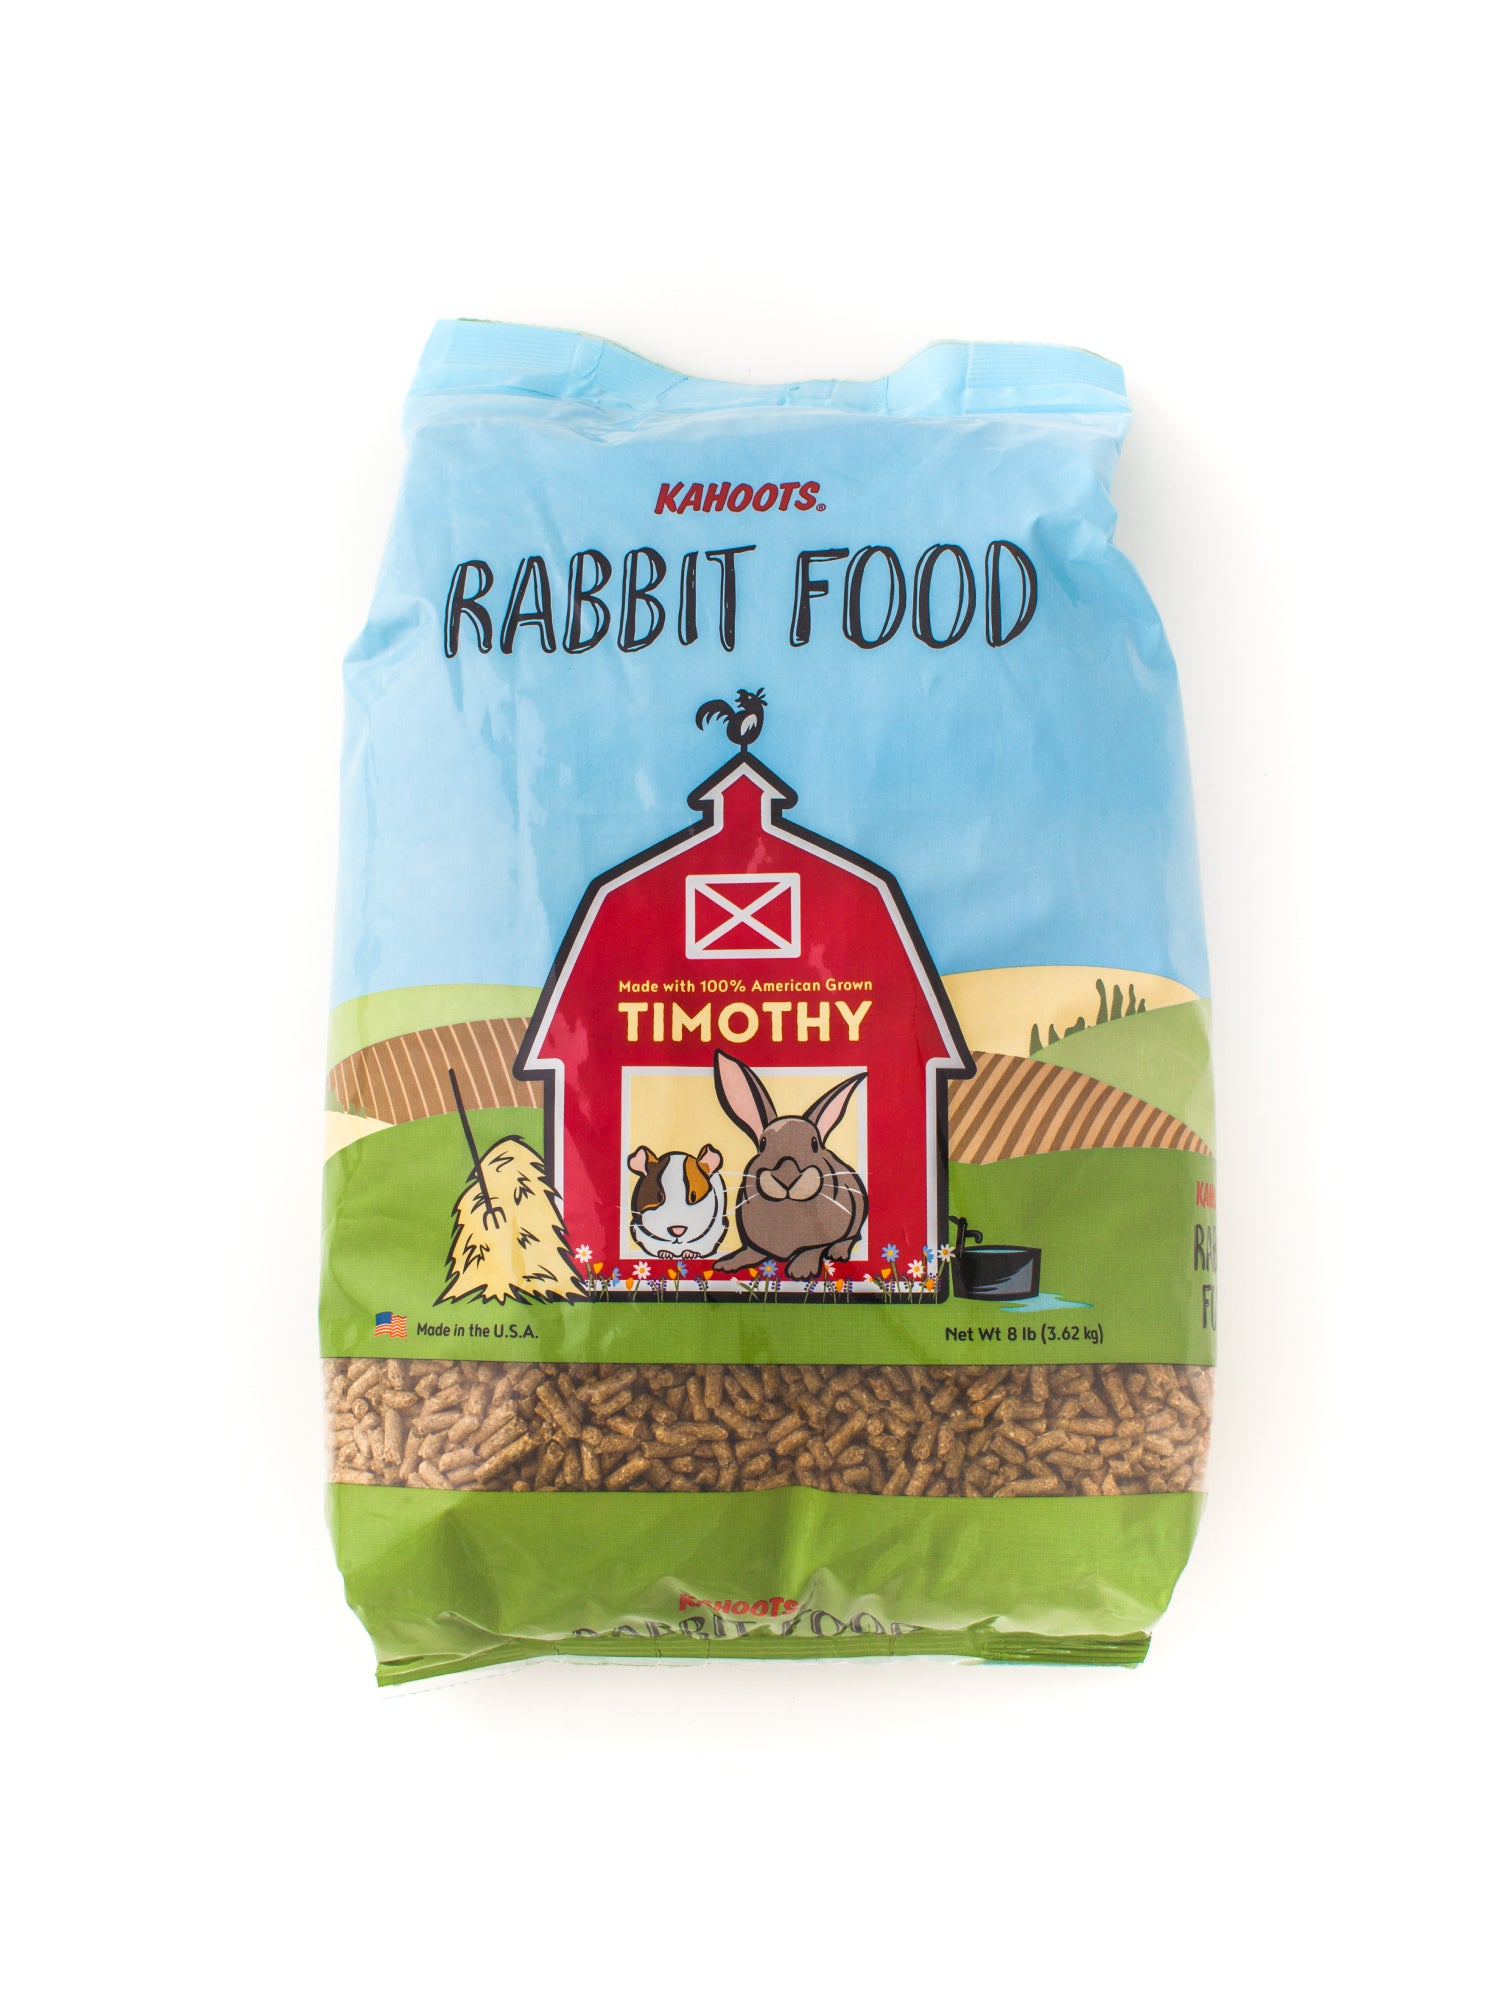 Rabbit food pellets in bag. 8lb